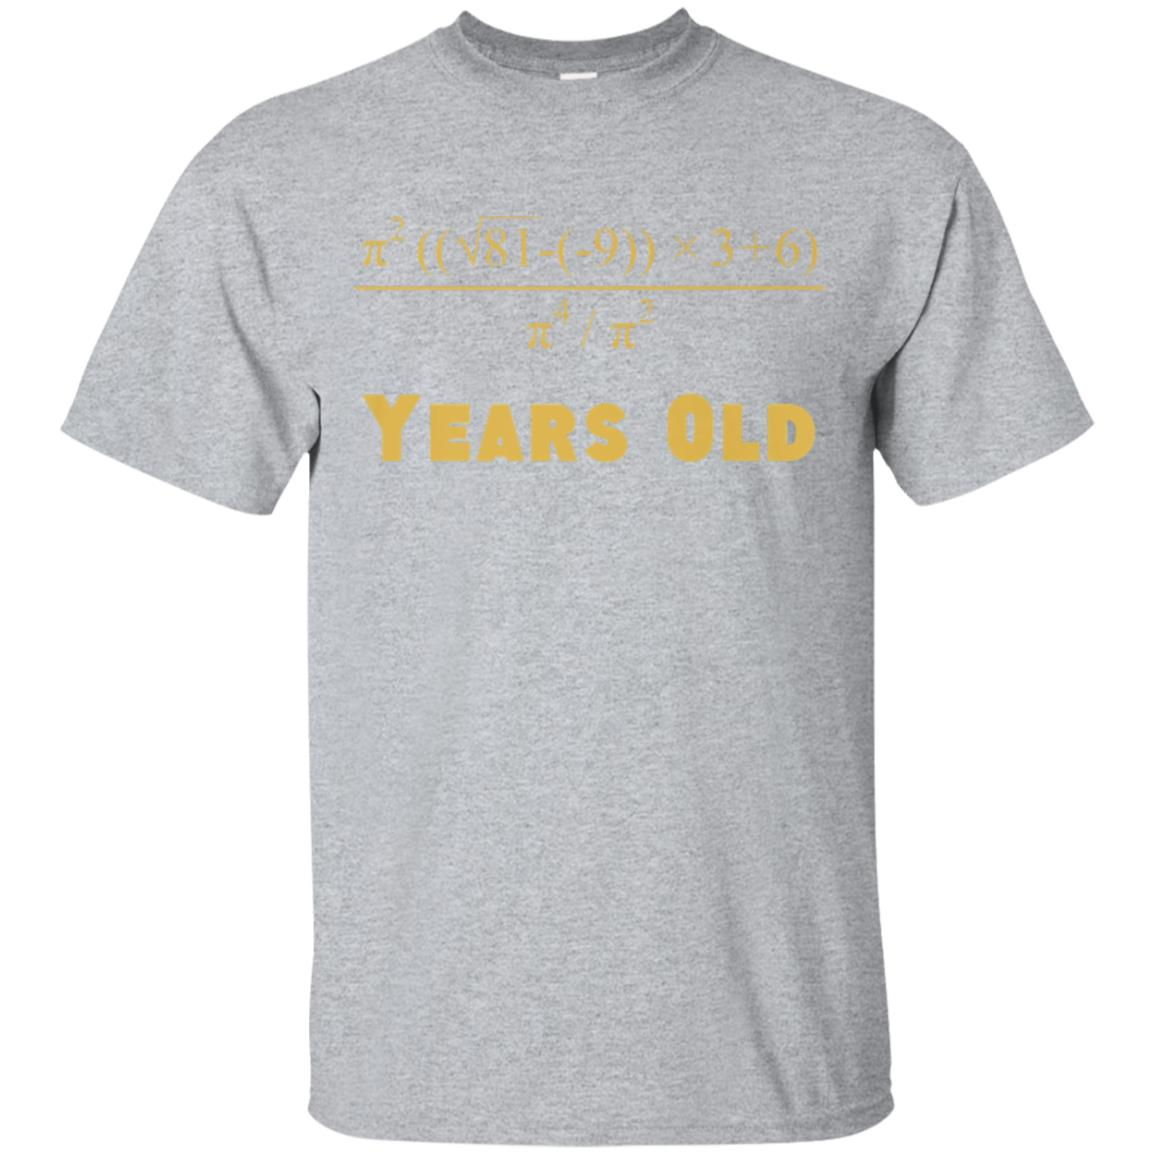 eb55d23b Awesome 60 years old algebra equation funny 60th birthday math shirt -  99promocode